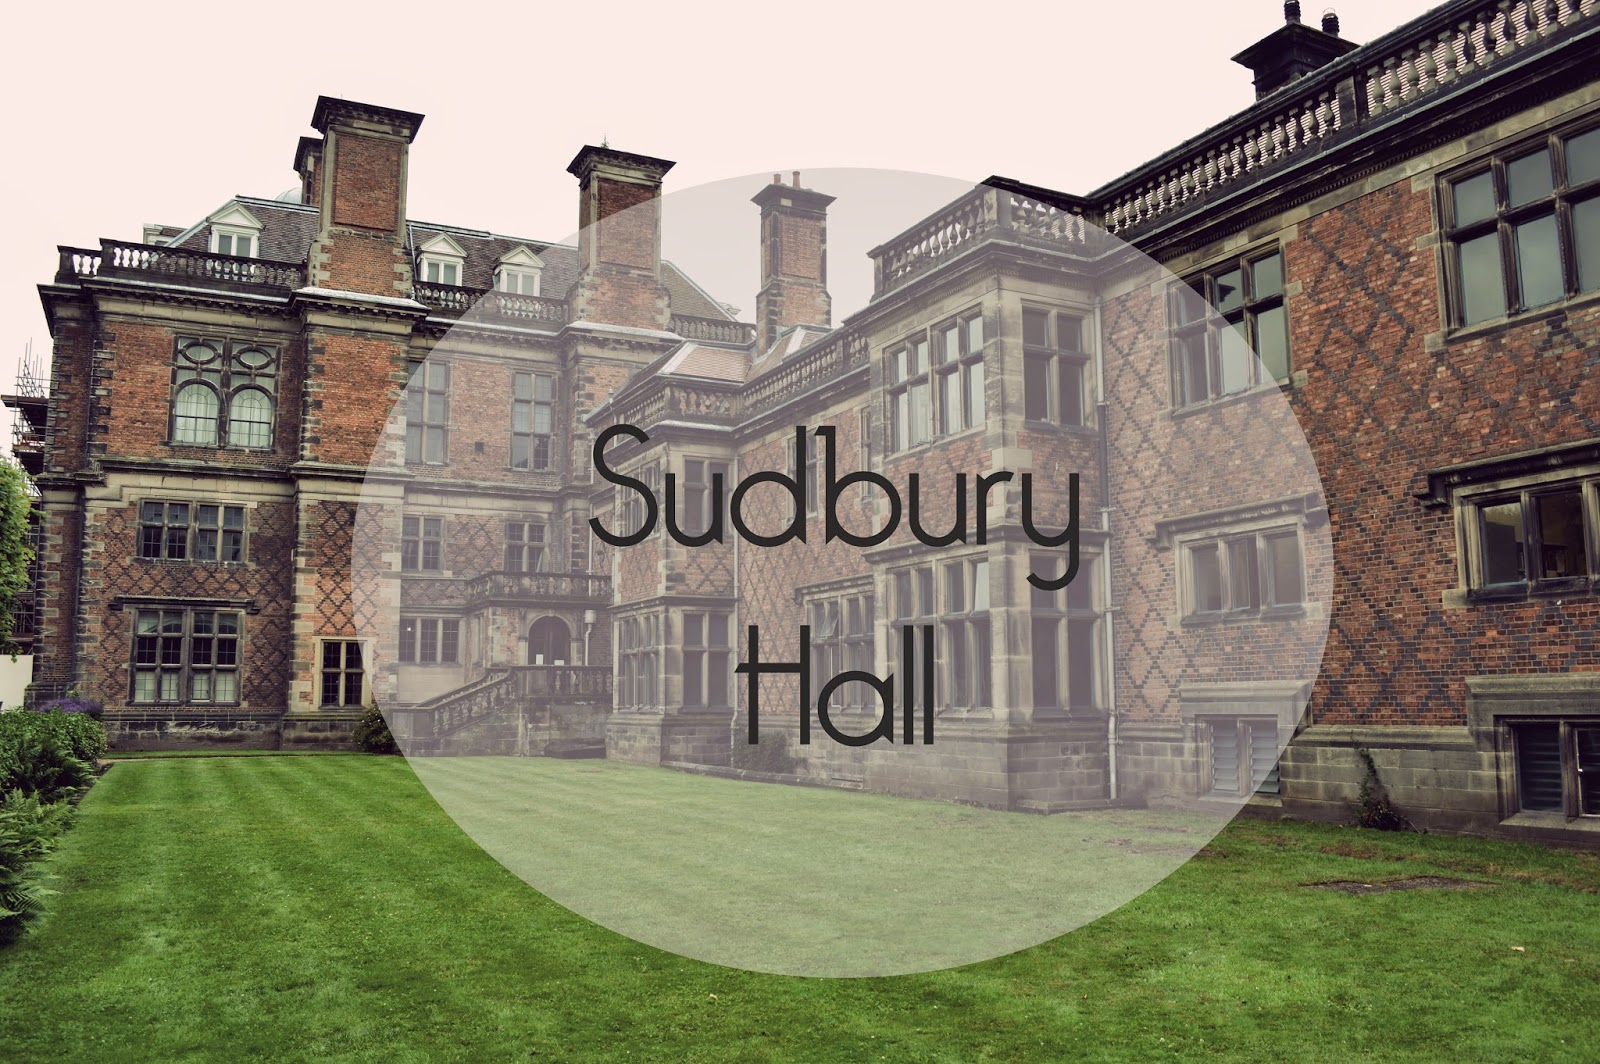 Sudbury Hall, photos, photograph, historical properties, BBC Pride and Prejudice film location, National Trust, review, derby, 17th century, inside, outside, visit